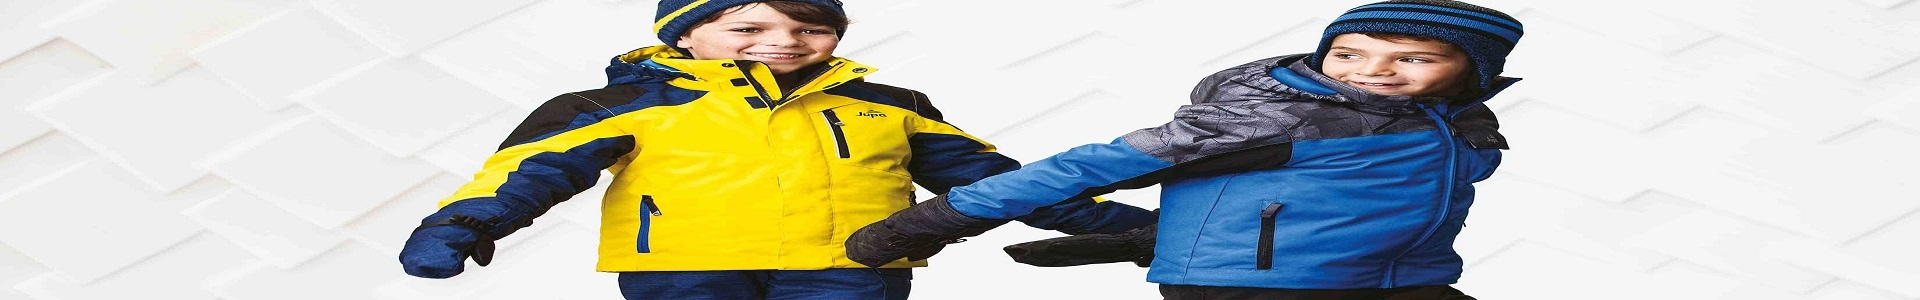 ExtraOffre Sport Banner Kids Clothing Jackets Outerwear Category